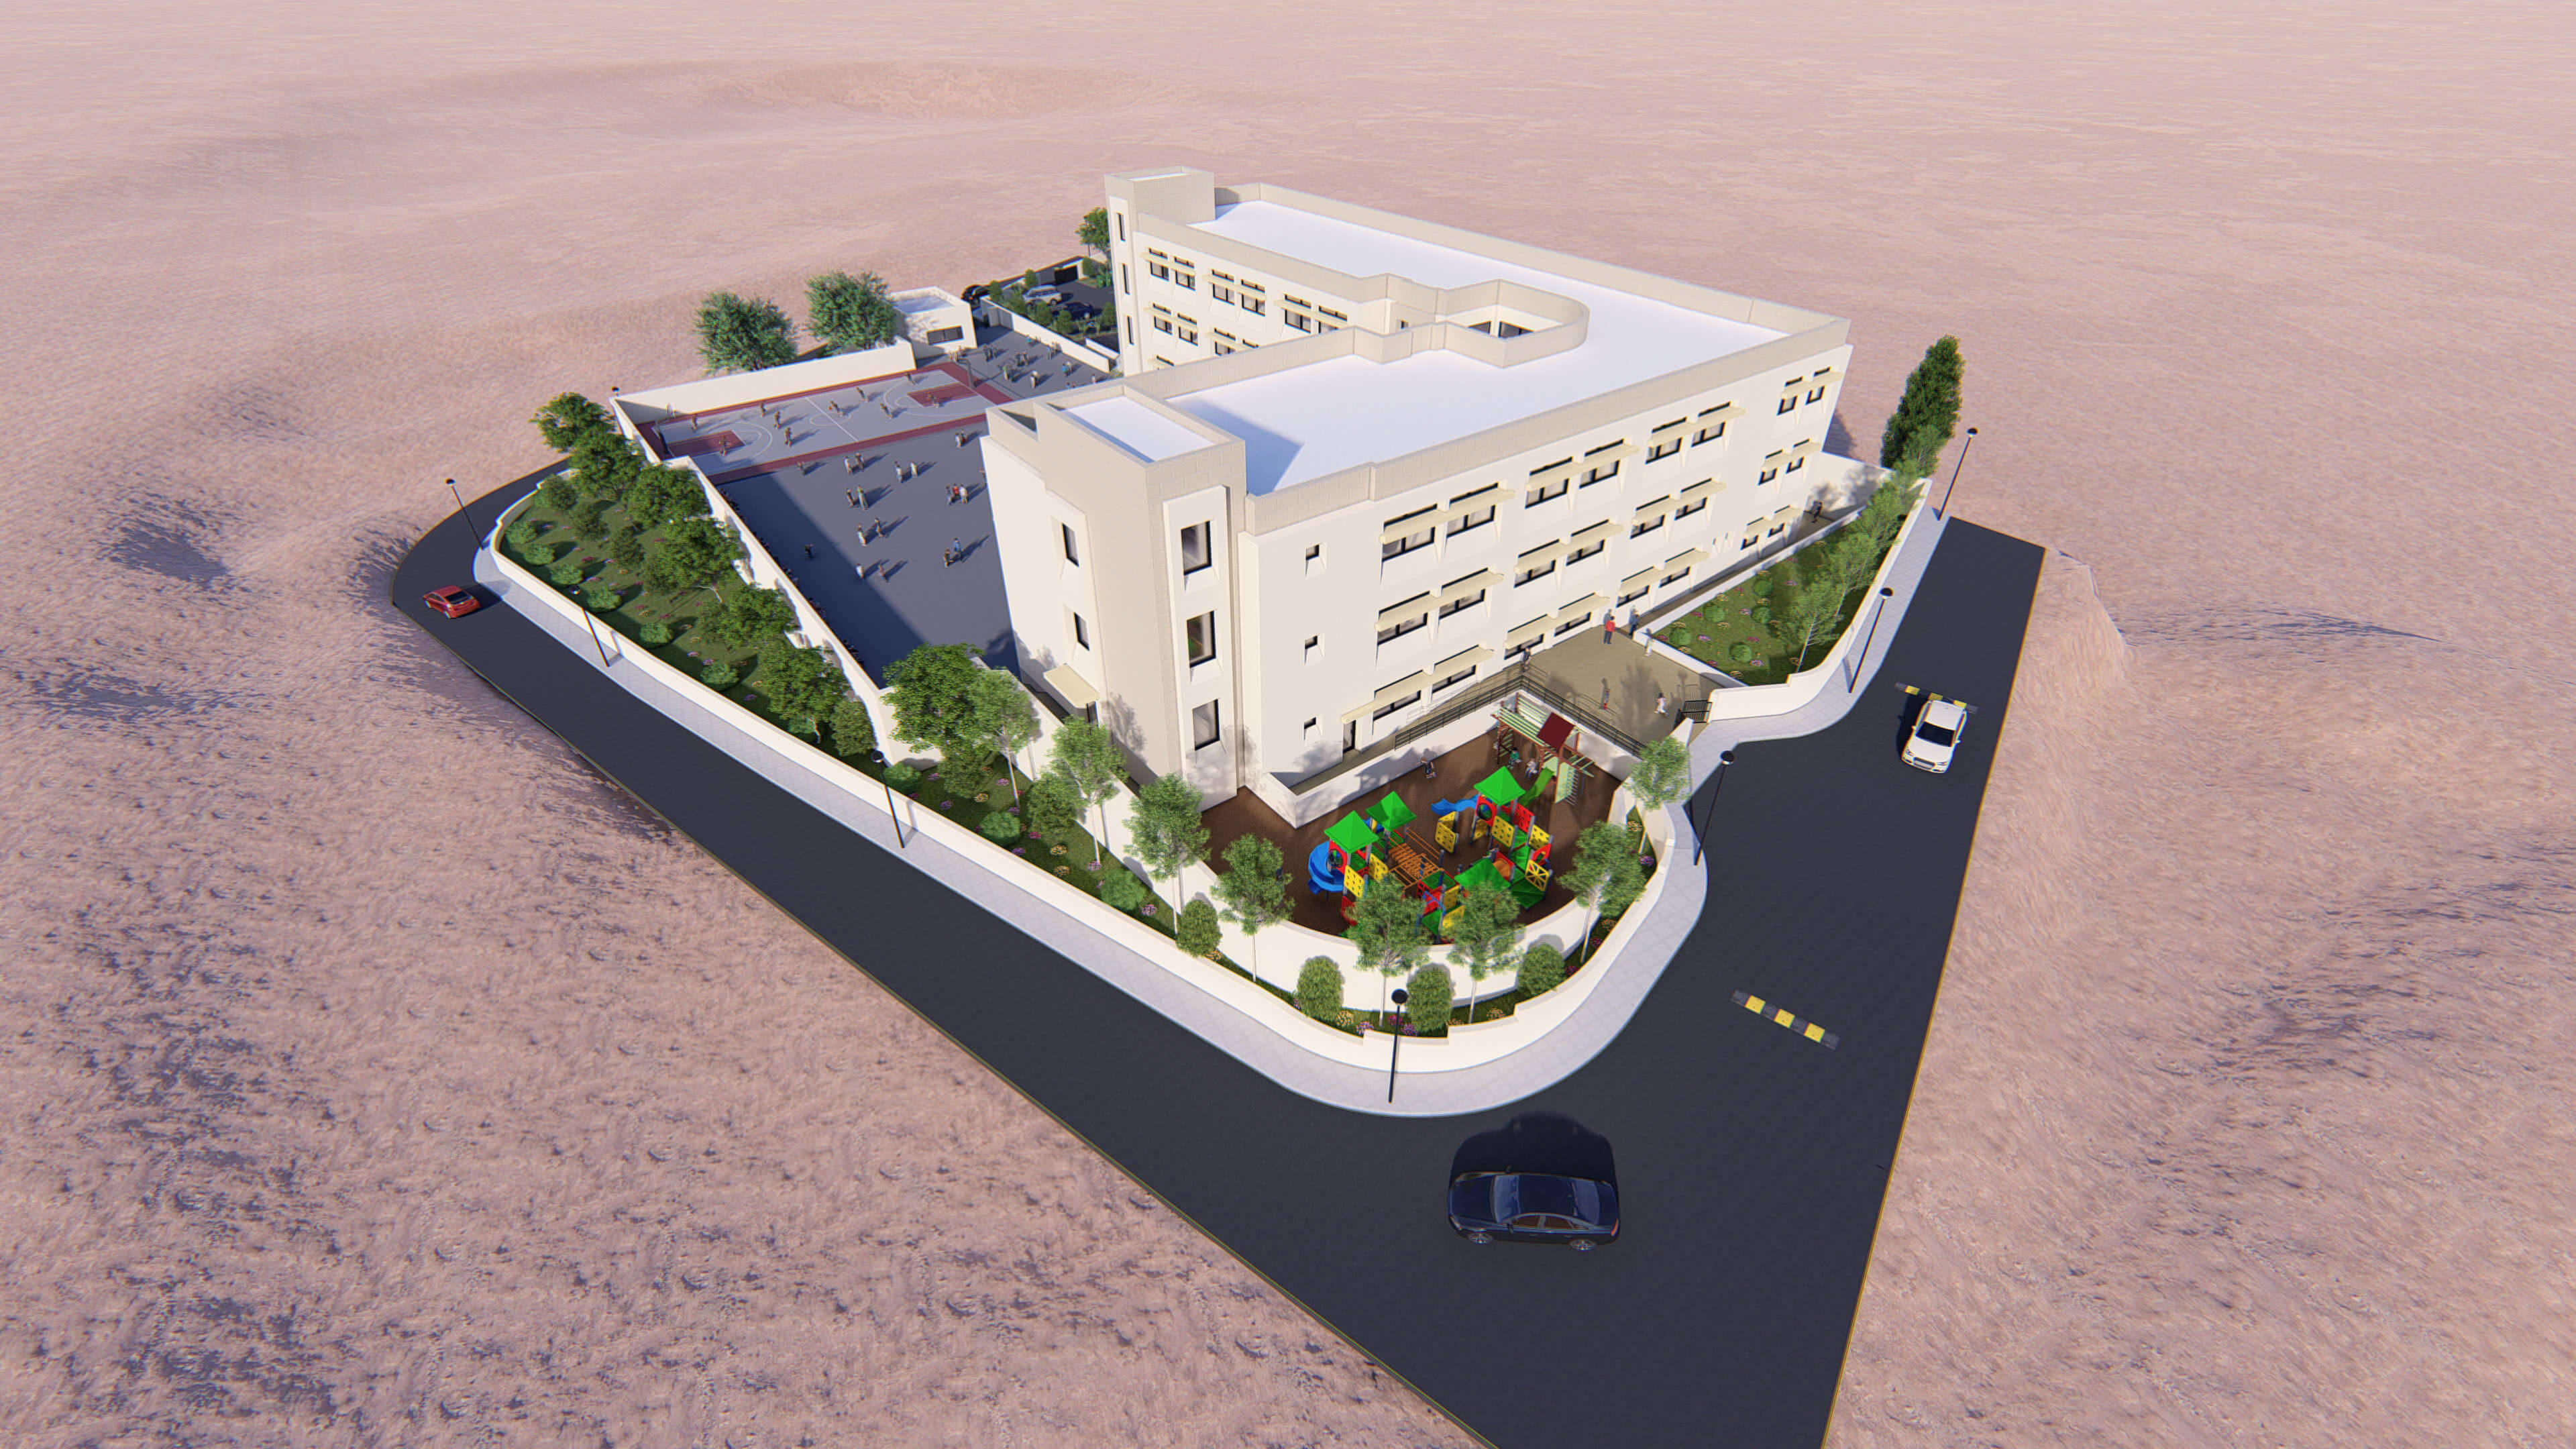 Al-Bayadah Secondary School for Girls in Irbid